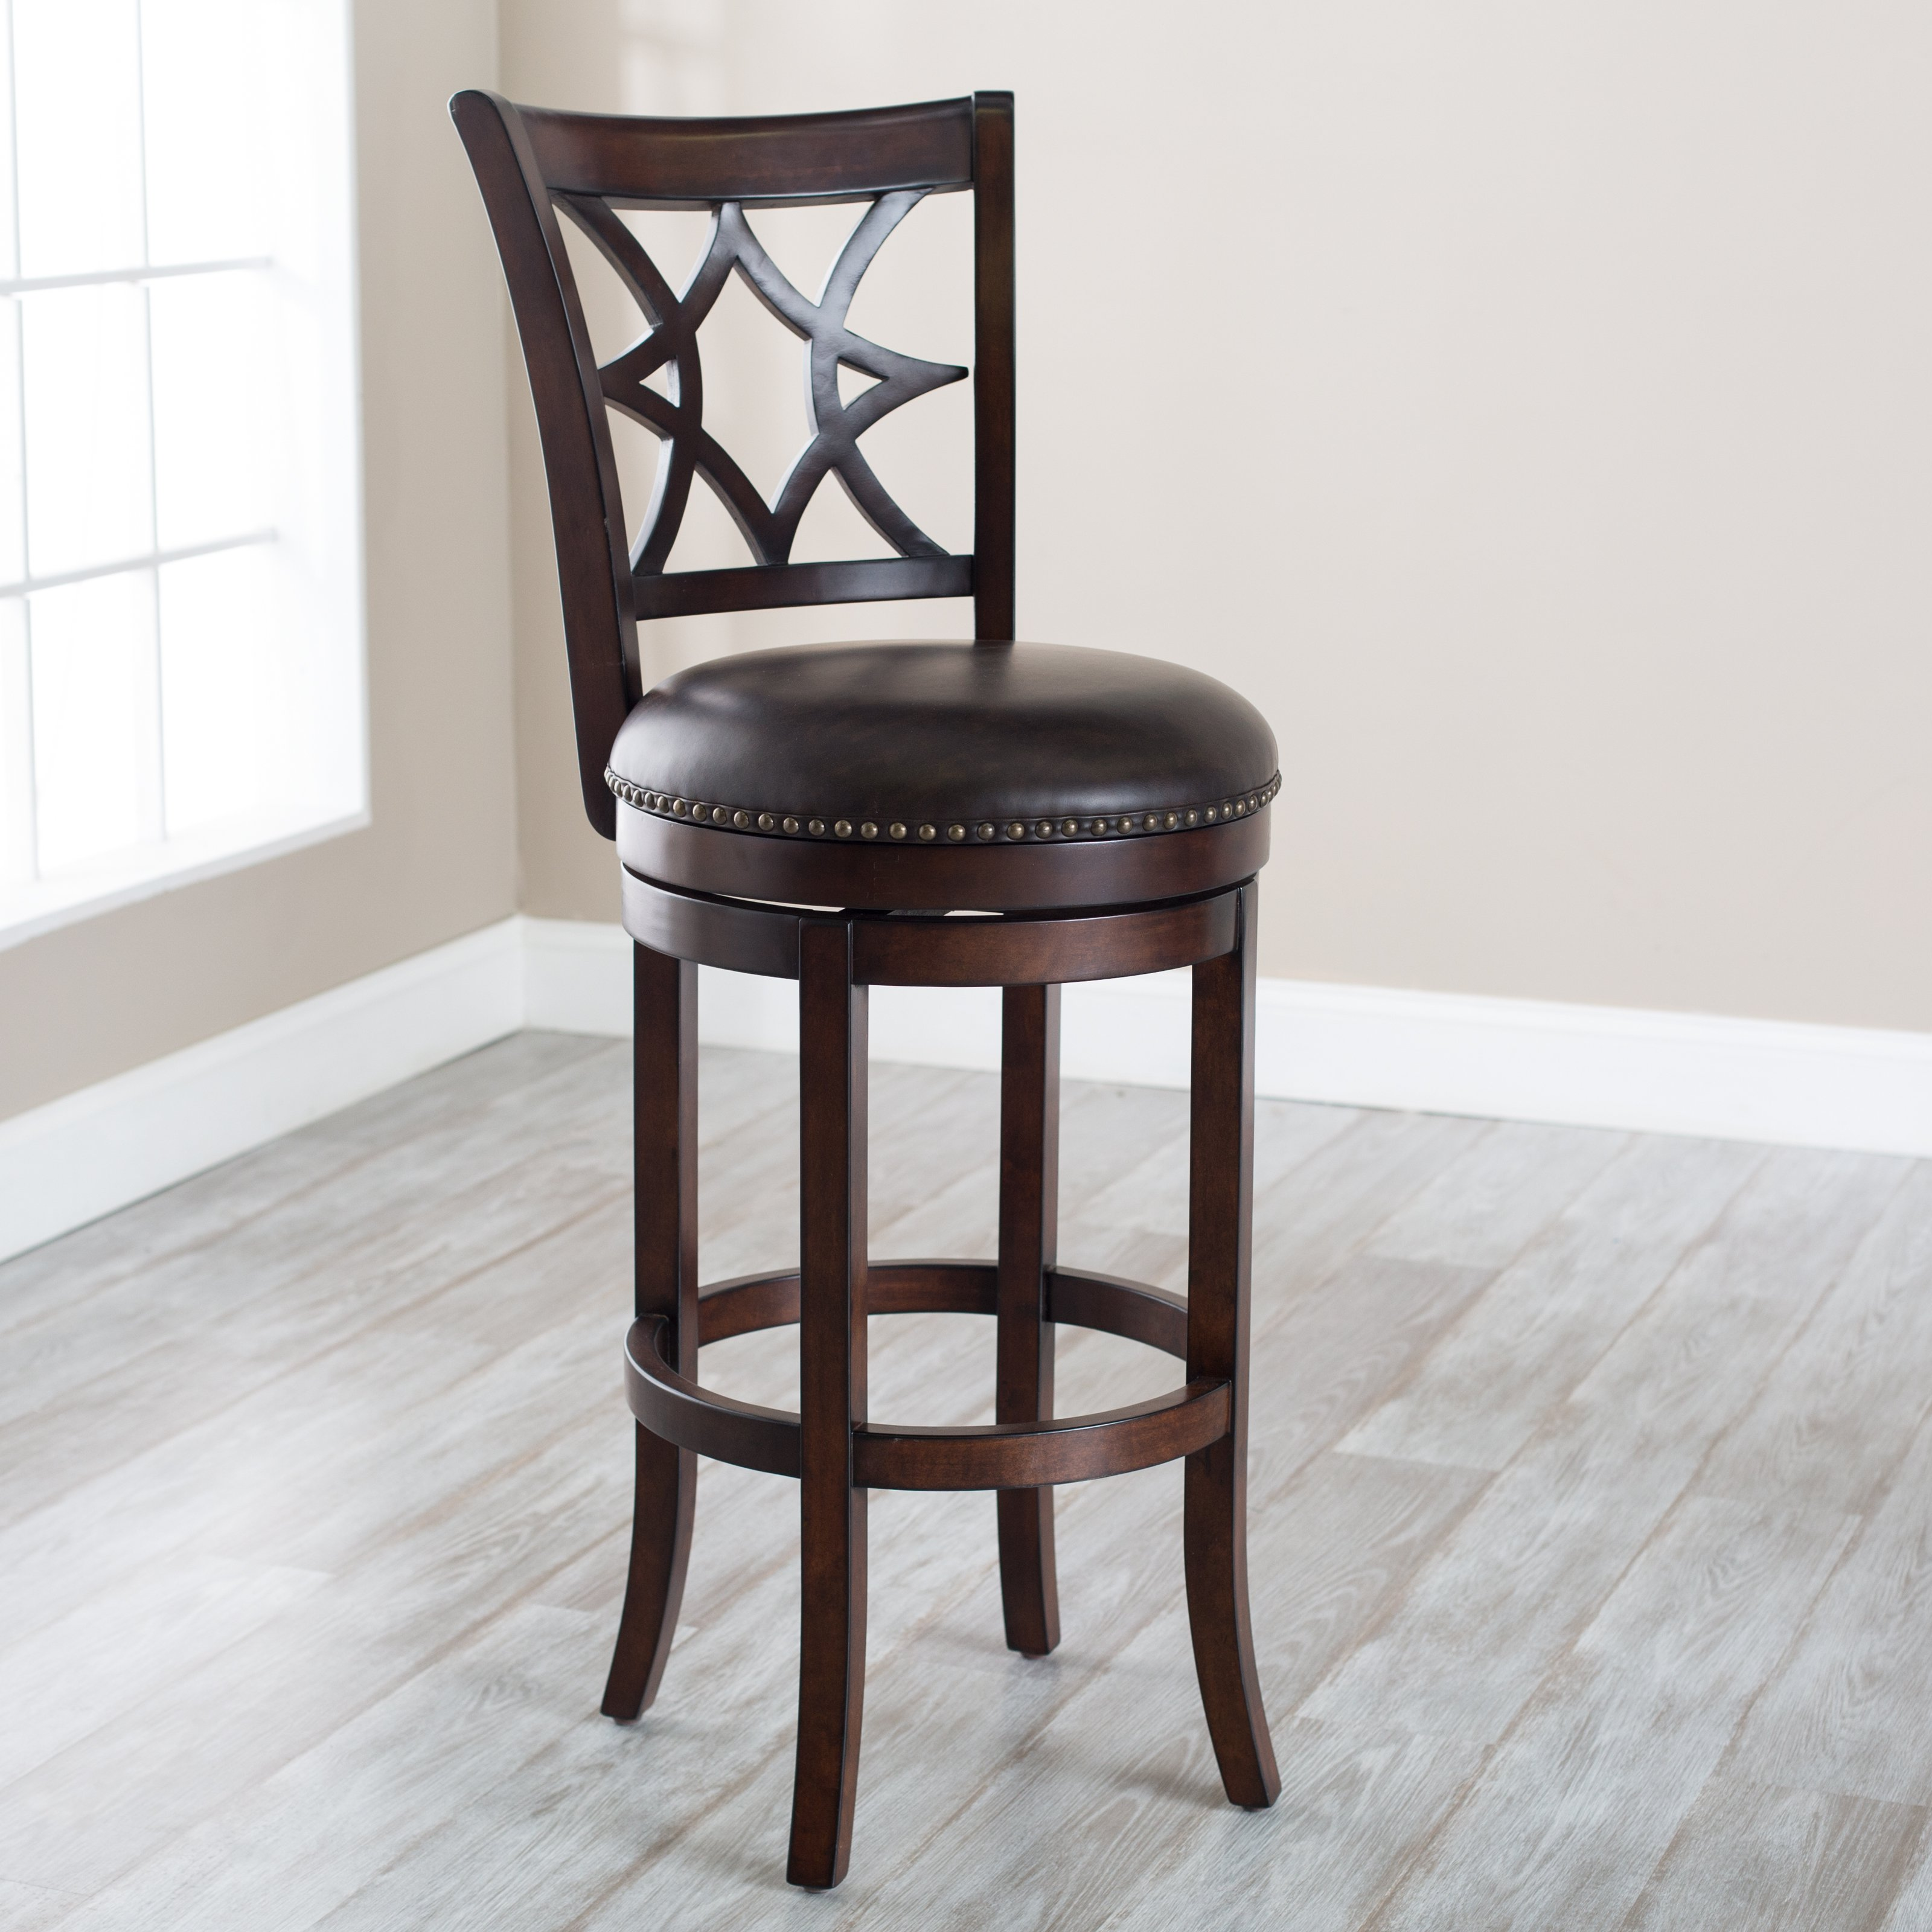 Belham Living Oliver Wood Swivel Bar Stool with Nailheads